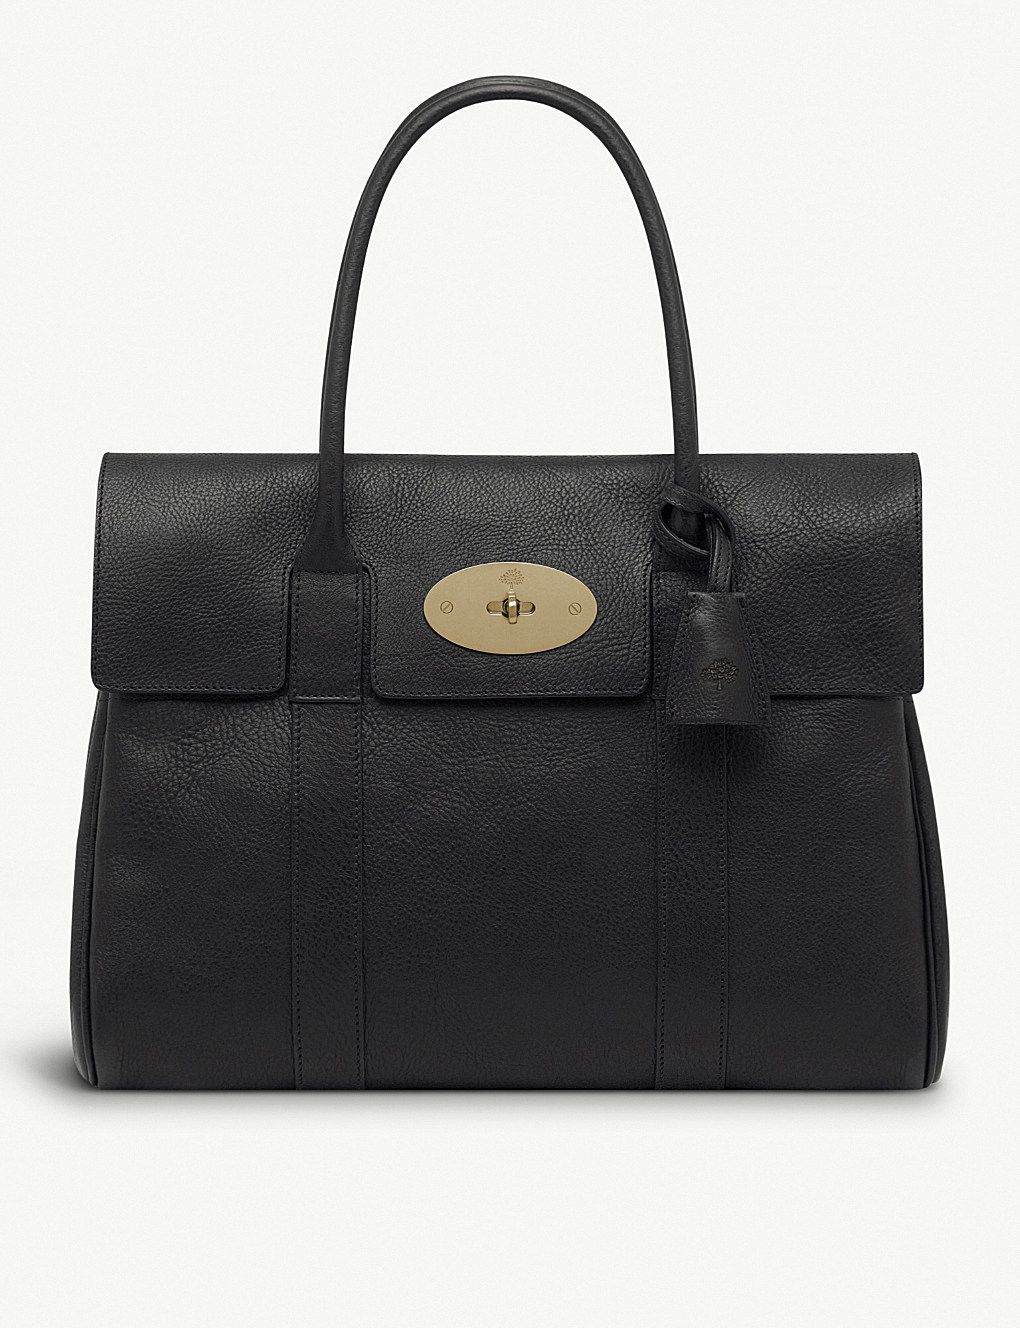 MULBERRY - Bayswater leather bag  ad7b4773873f0